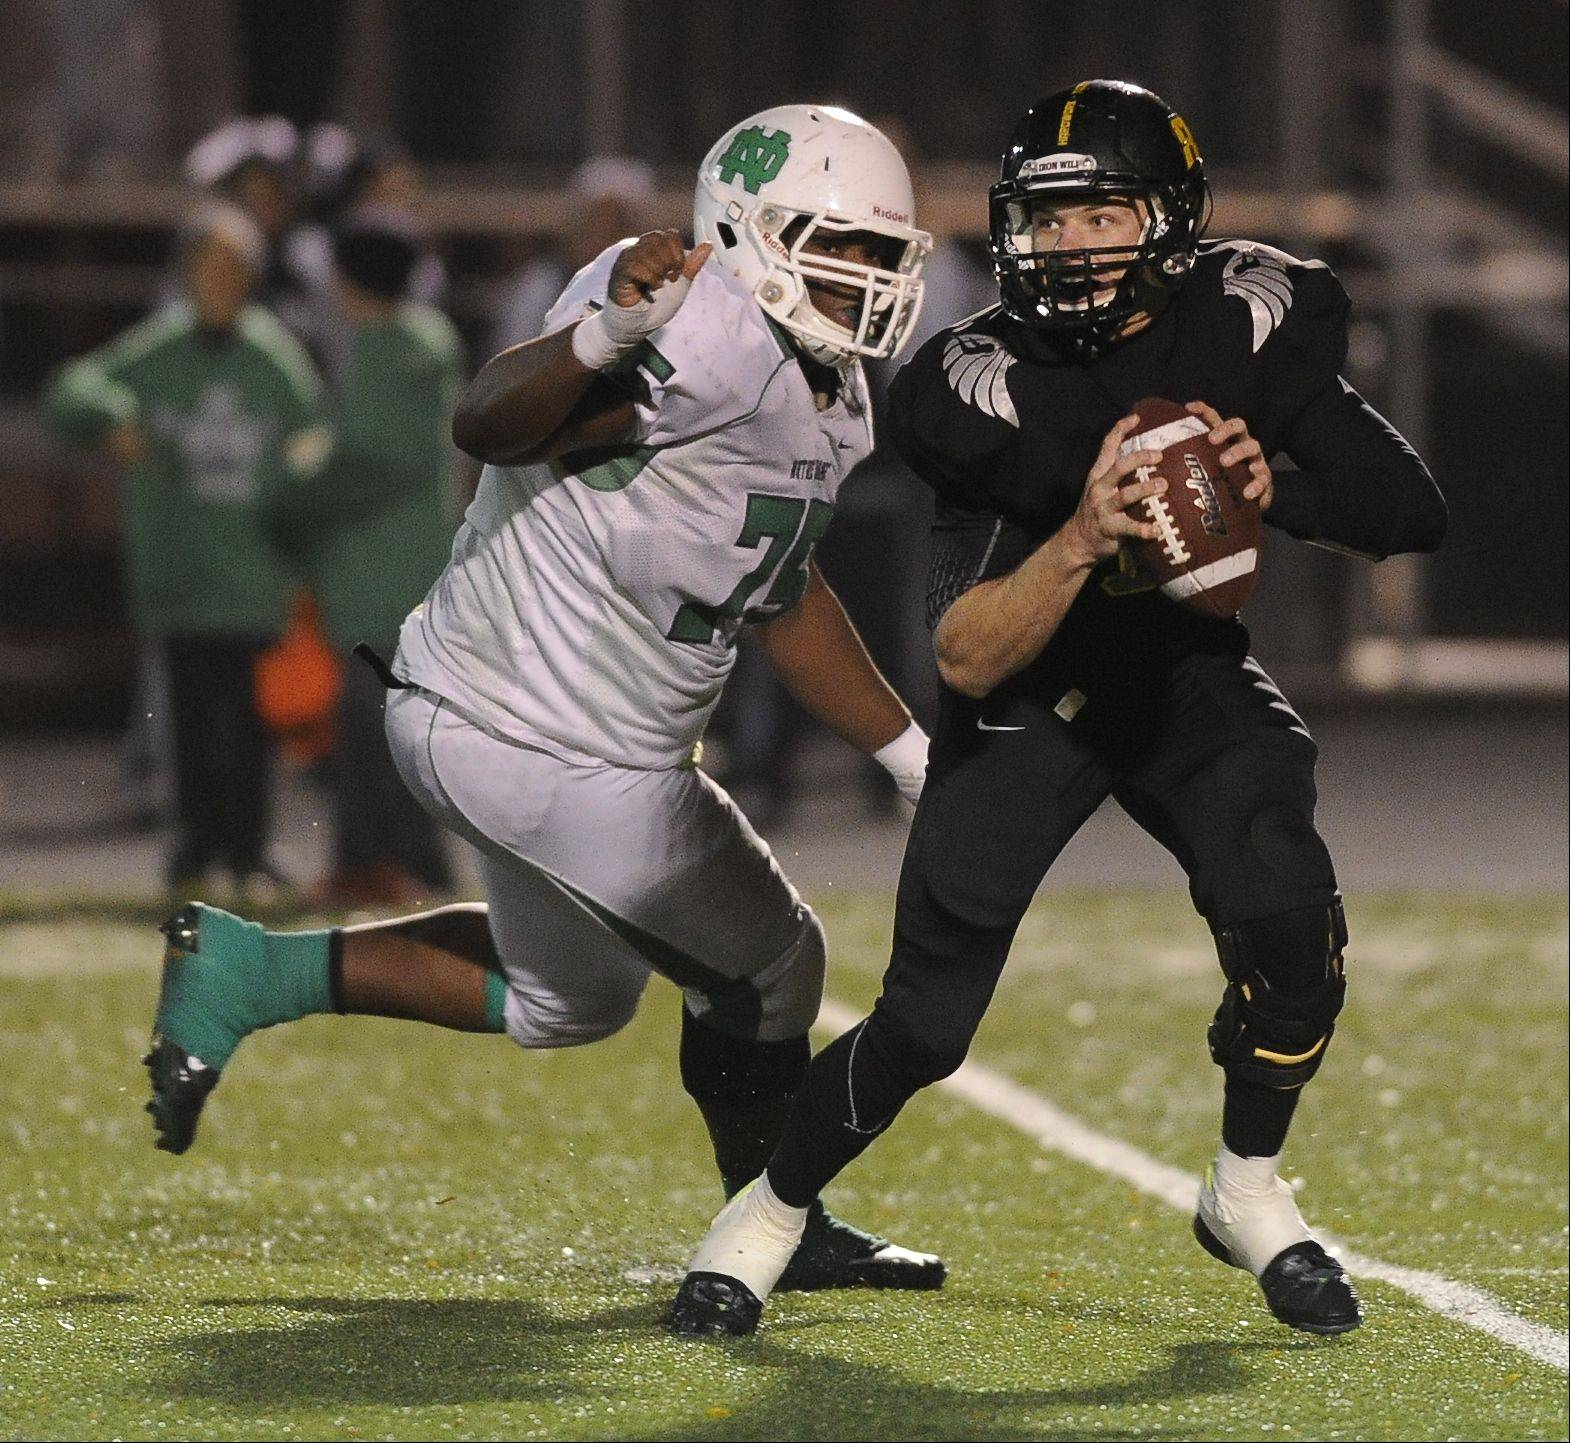 Round One - Photos from the Fremd vs. Notre Dame playoff football game on Friday, November 1st, in Palatine.